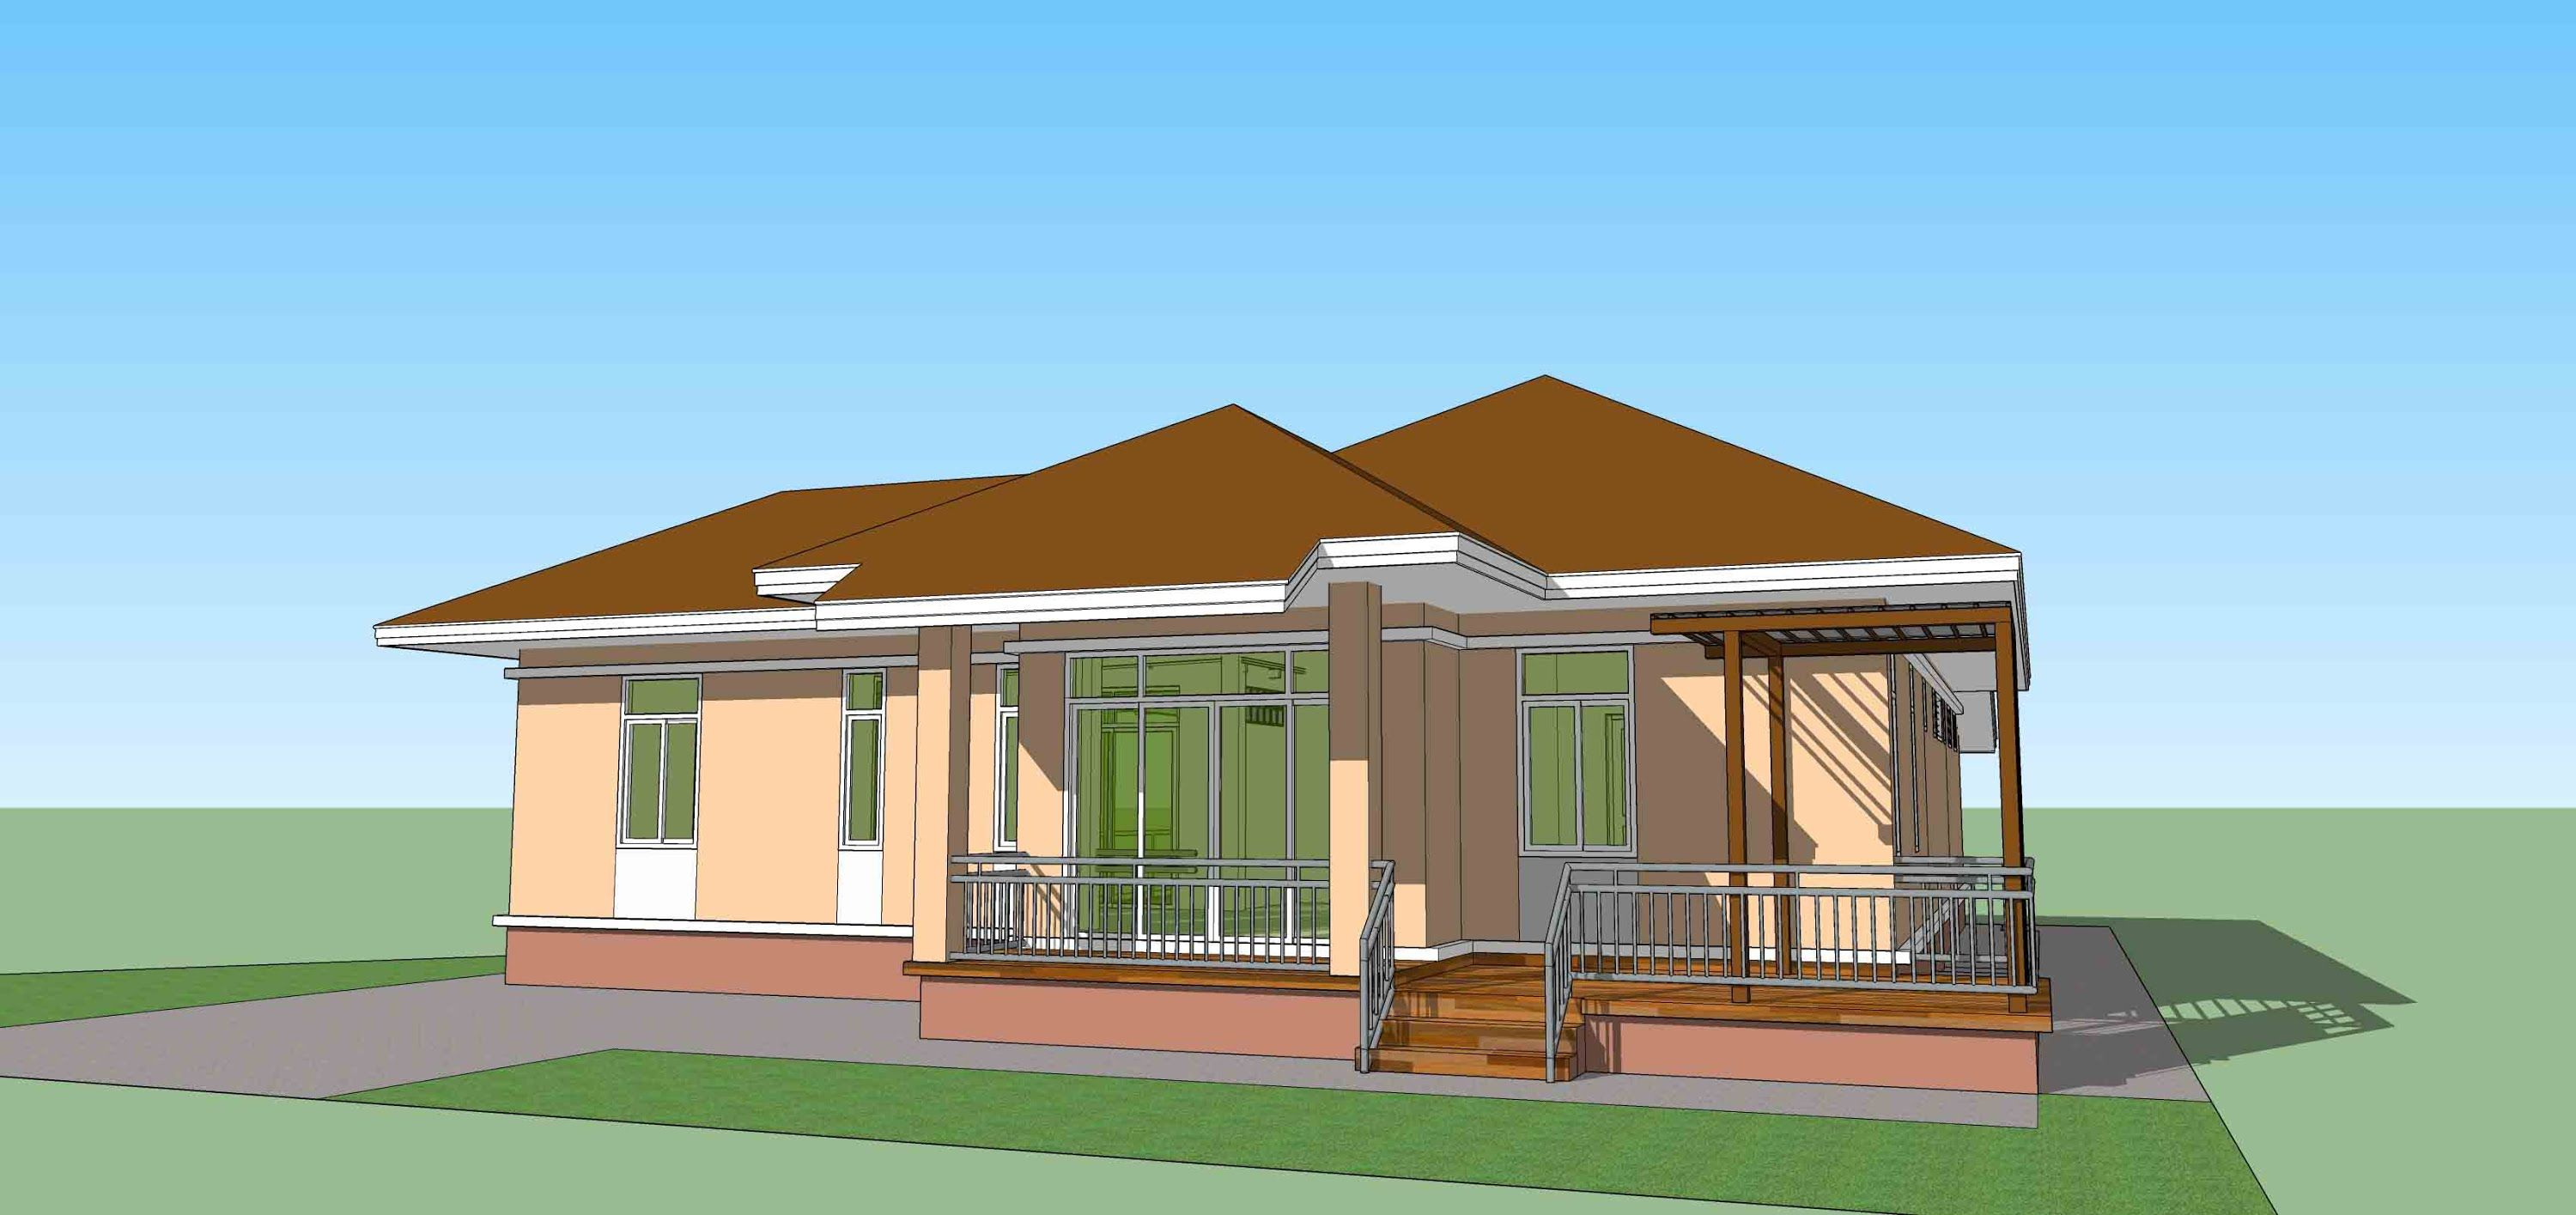 Sketchup pro 2015 how to create house model in 1.30 hour ...